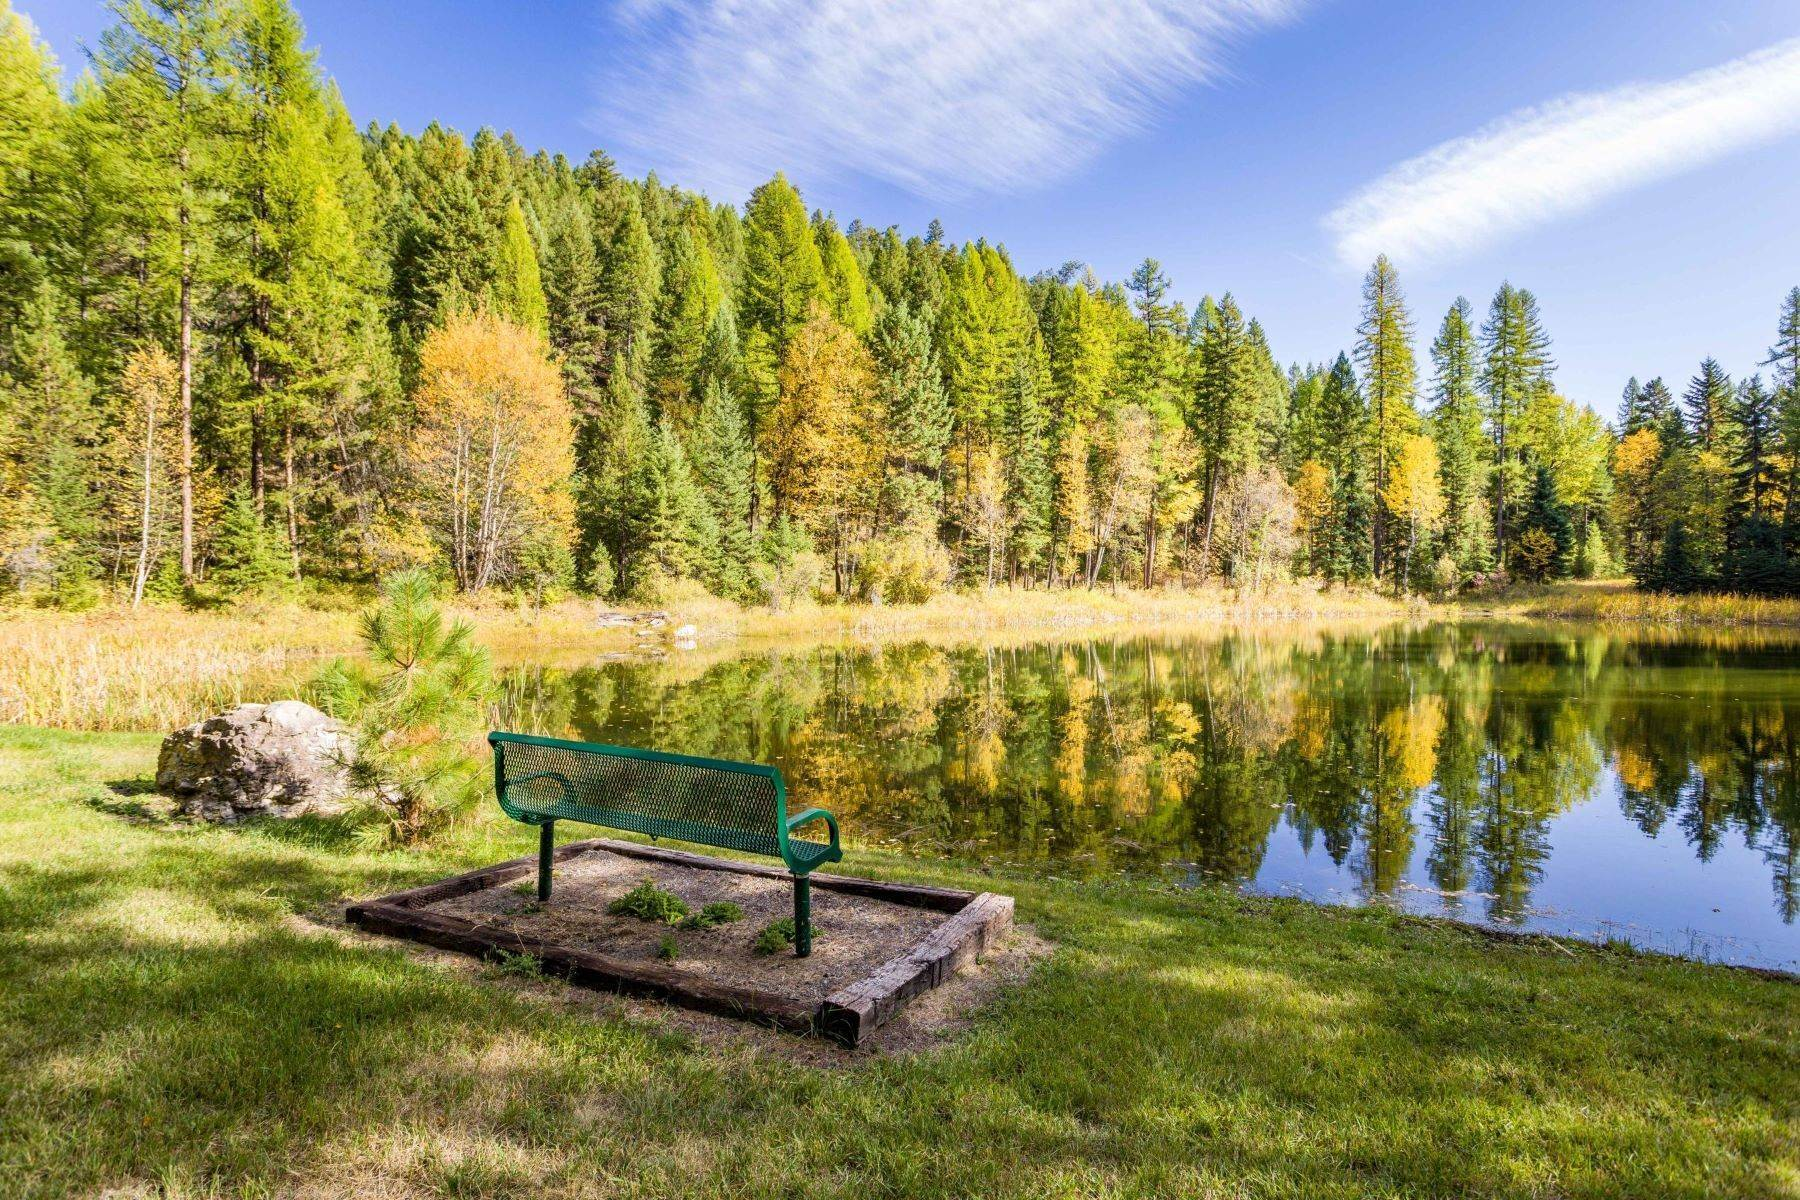 25. Land for Sale at Northwest Montana Forest, Meadows and Ponds 295 Garland Lane Whitefish, Montana 59937 United States